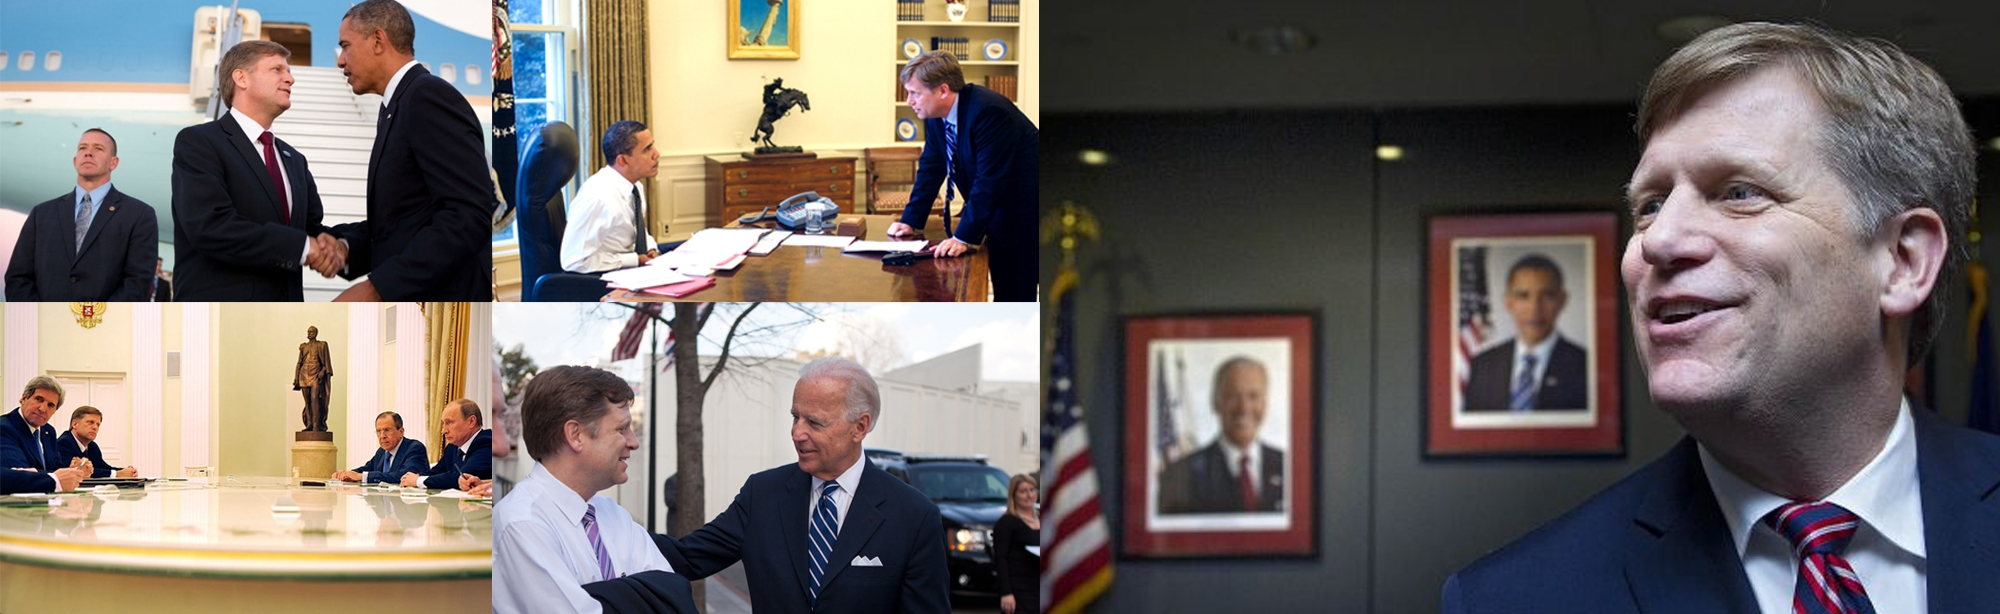 McFaul Collage